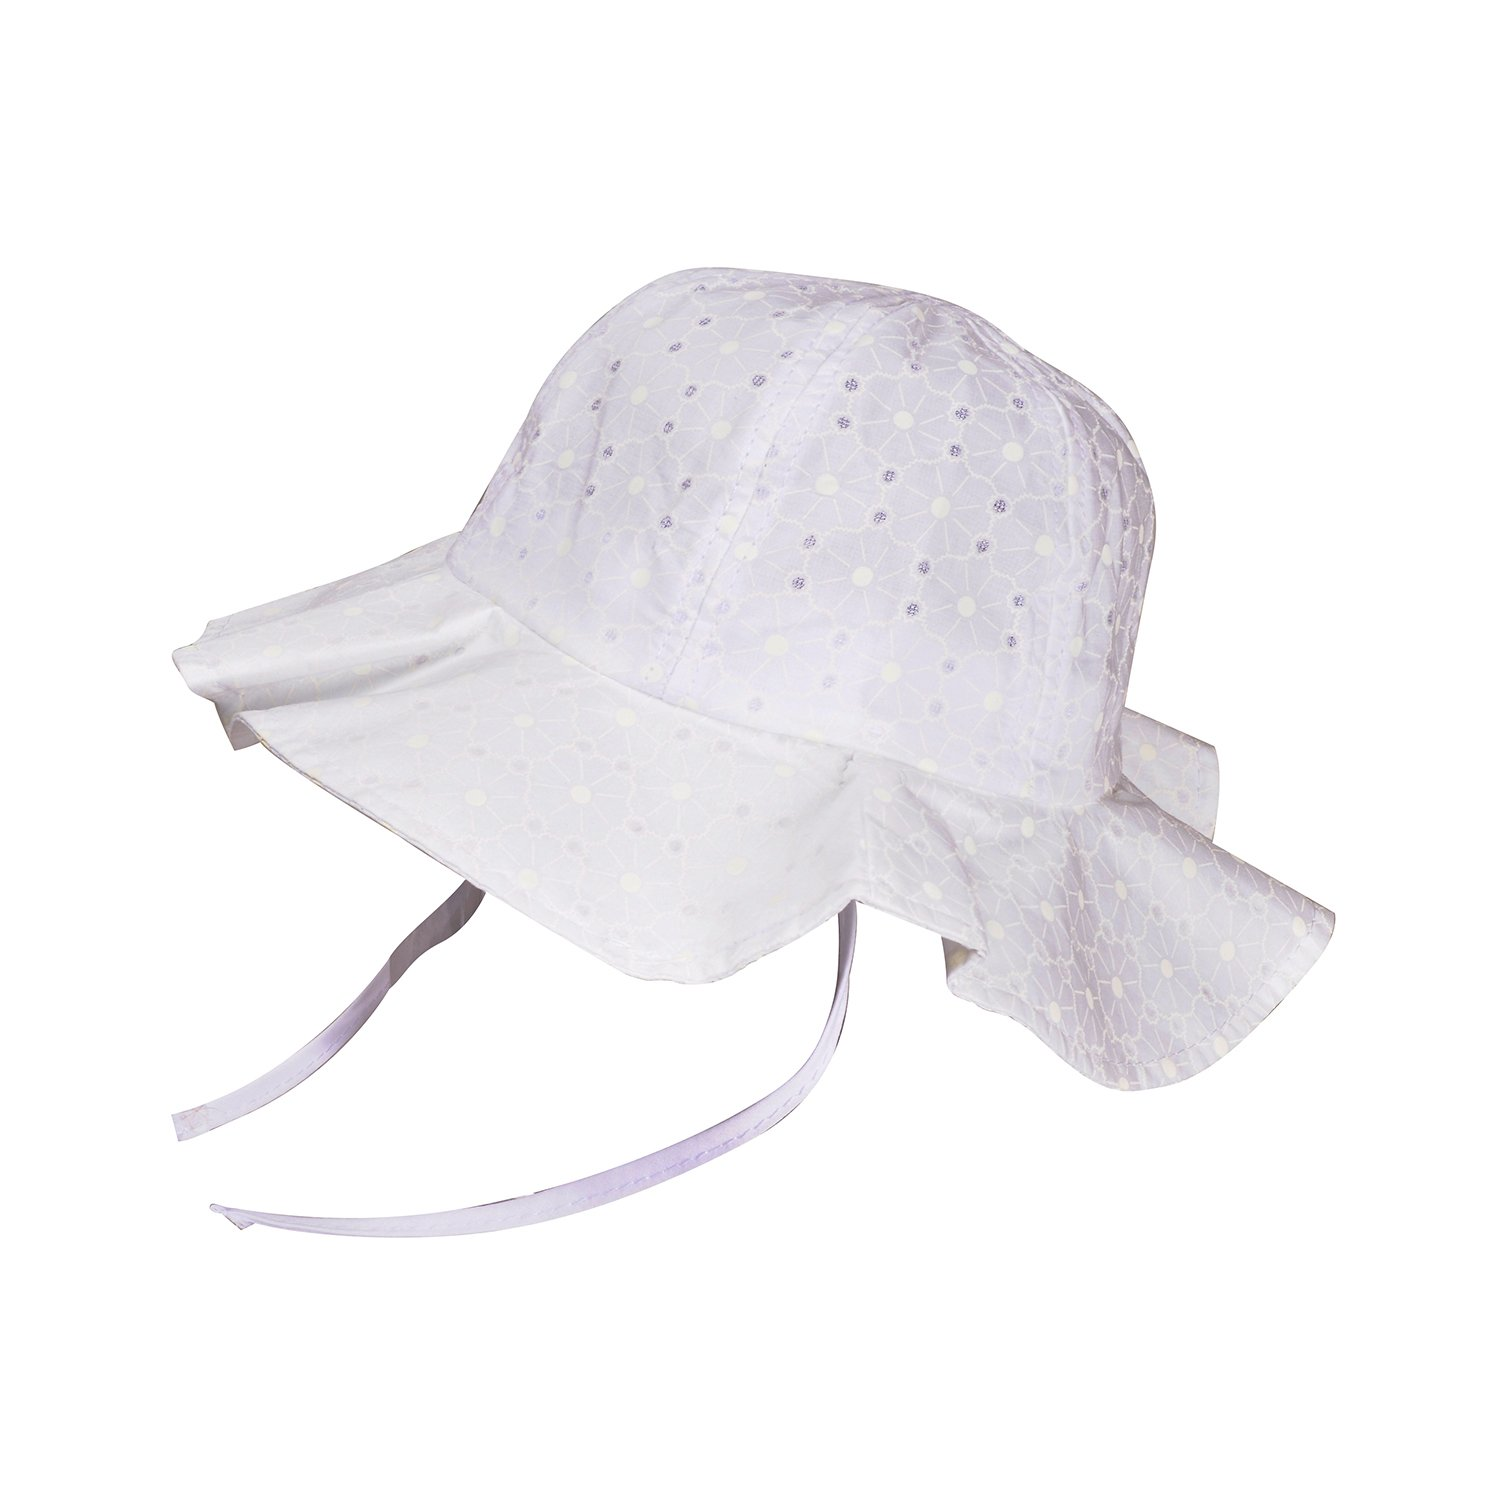 RORKEE Infant Toddlers Baby Girls Wide Brim Sun Protection Summer Floppy Hat(Pack of 2) by RORKEE (Image #4)